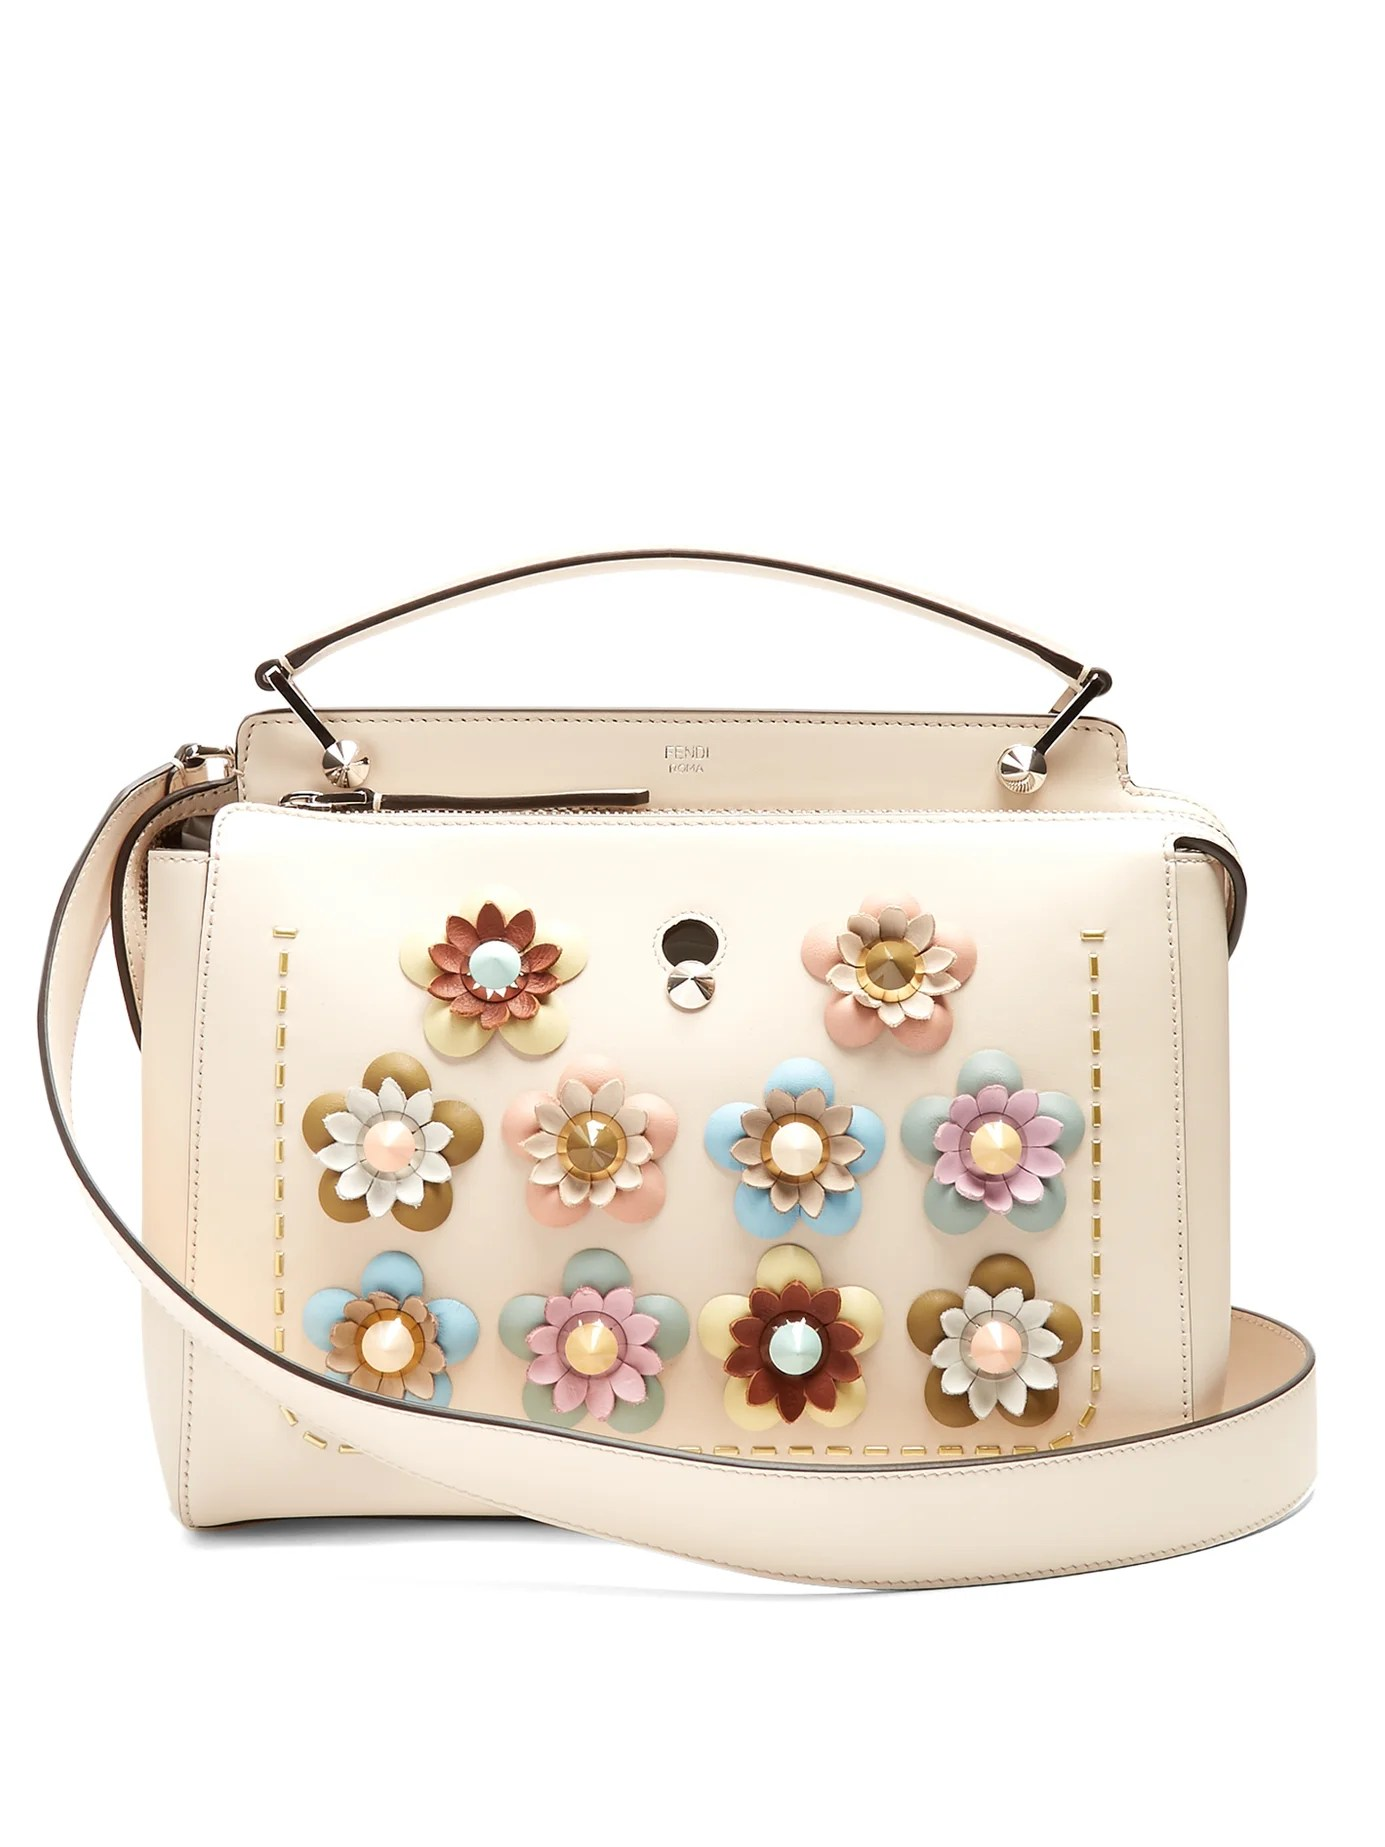 817e1740f4cf Zara Flower applique bag – inspiration from Burberry